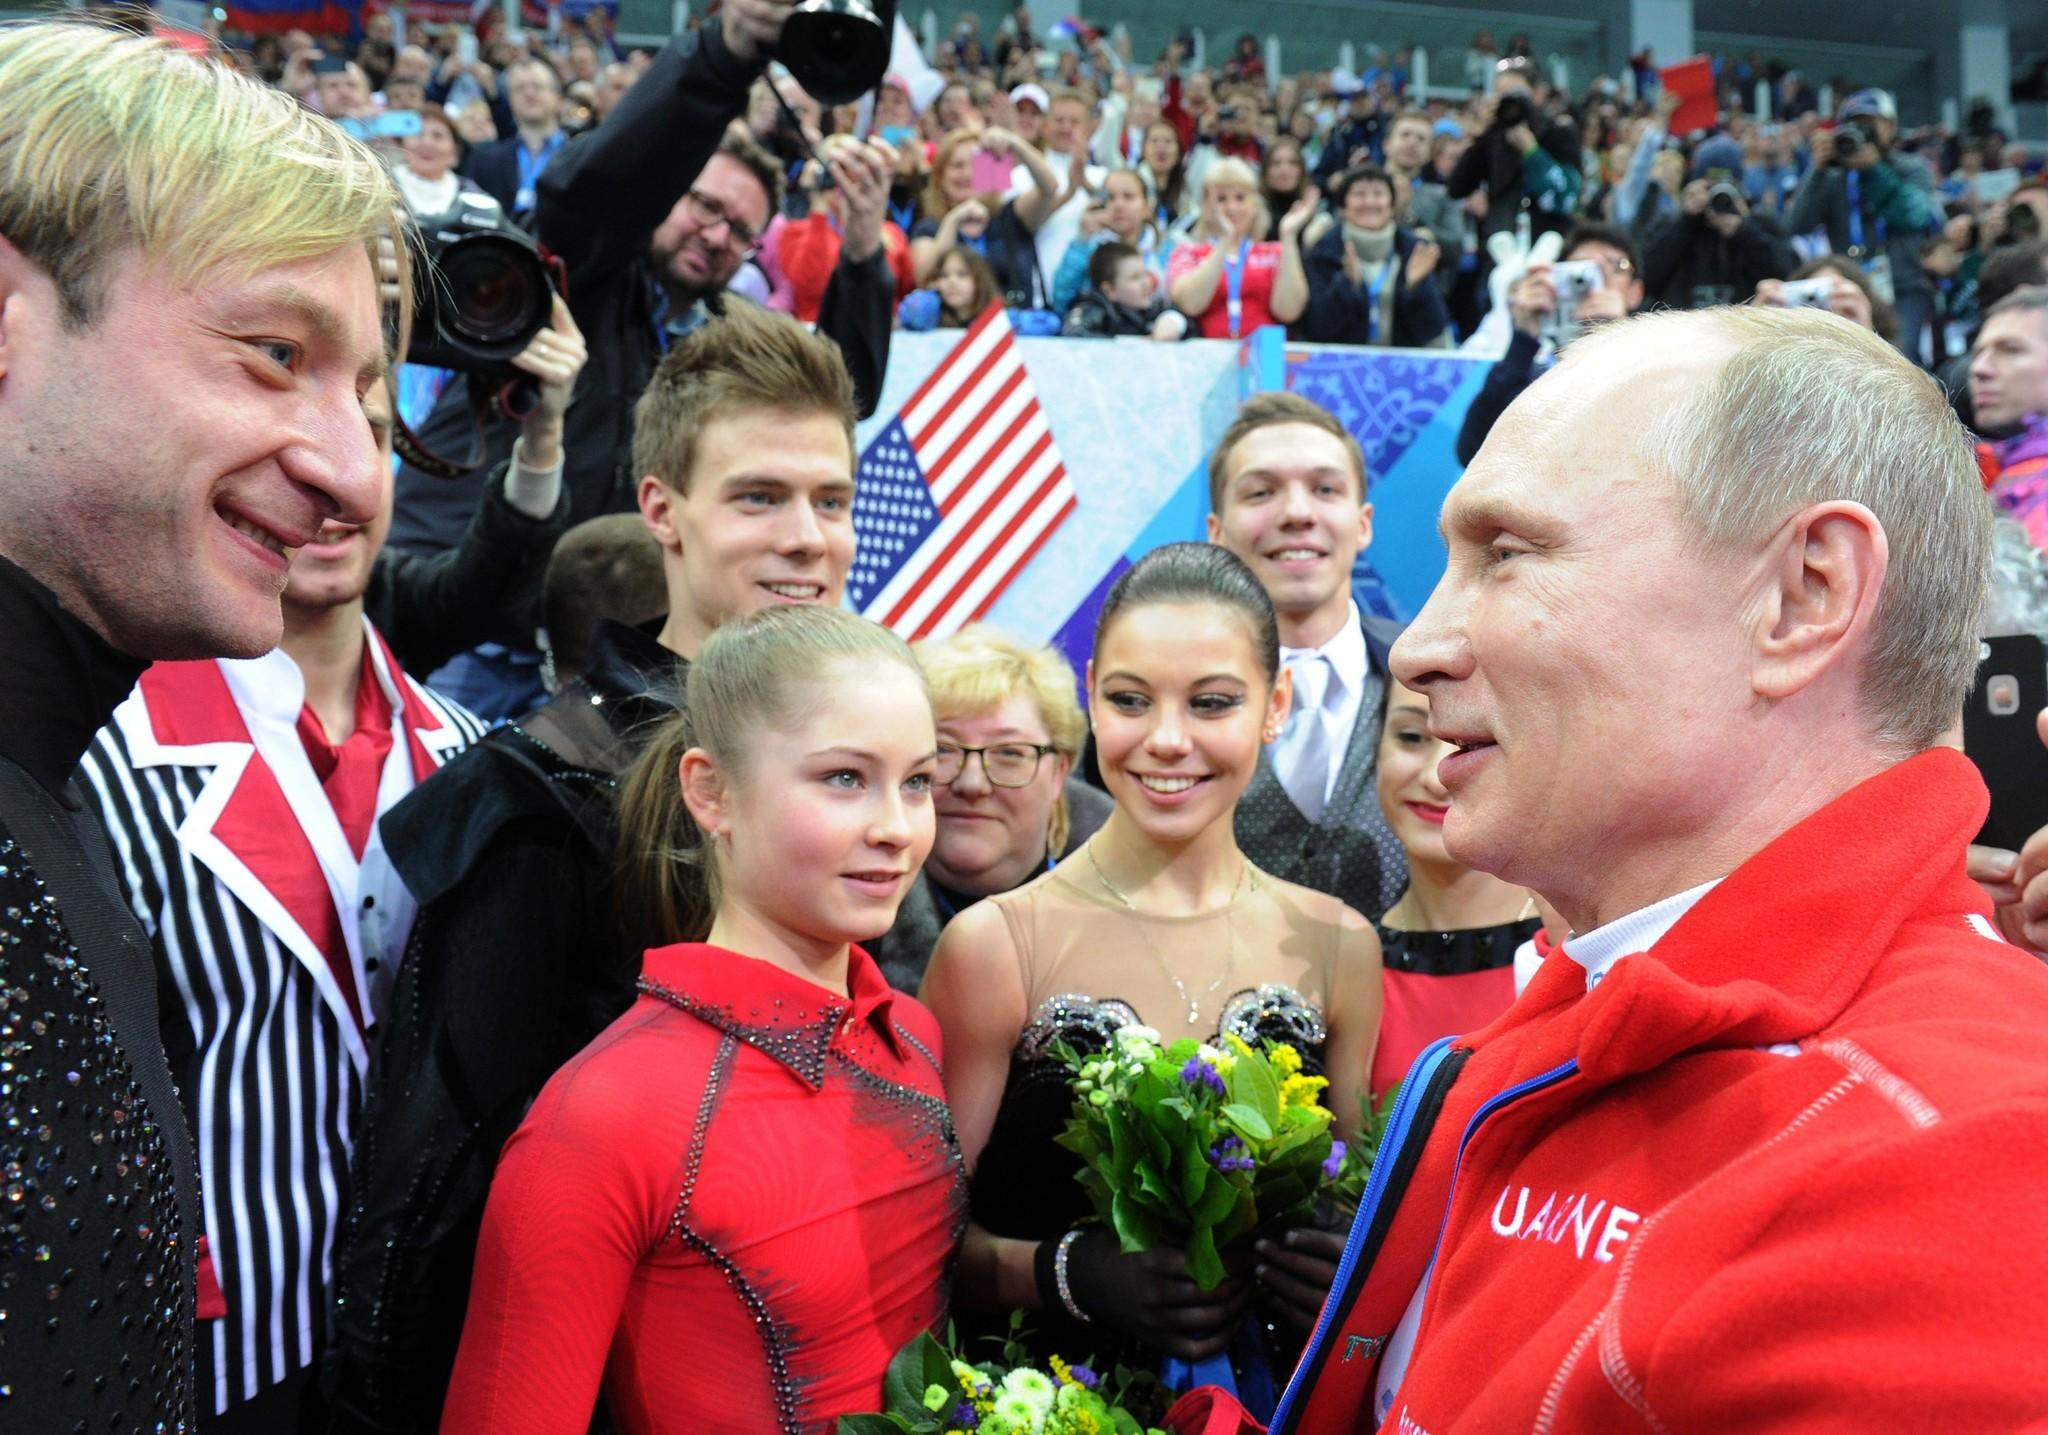 Russia's President Vladimir Putin (right) speaks with Evgeny Plushenko (from left), Yulia Lipnitskaia and other Russian figure skaters after watching the Women's Figure Skating Team Free Program at the Iceberg Skating Palace.